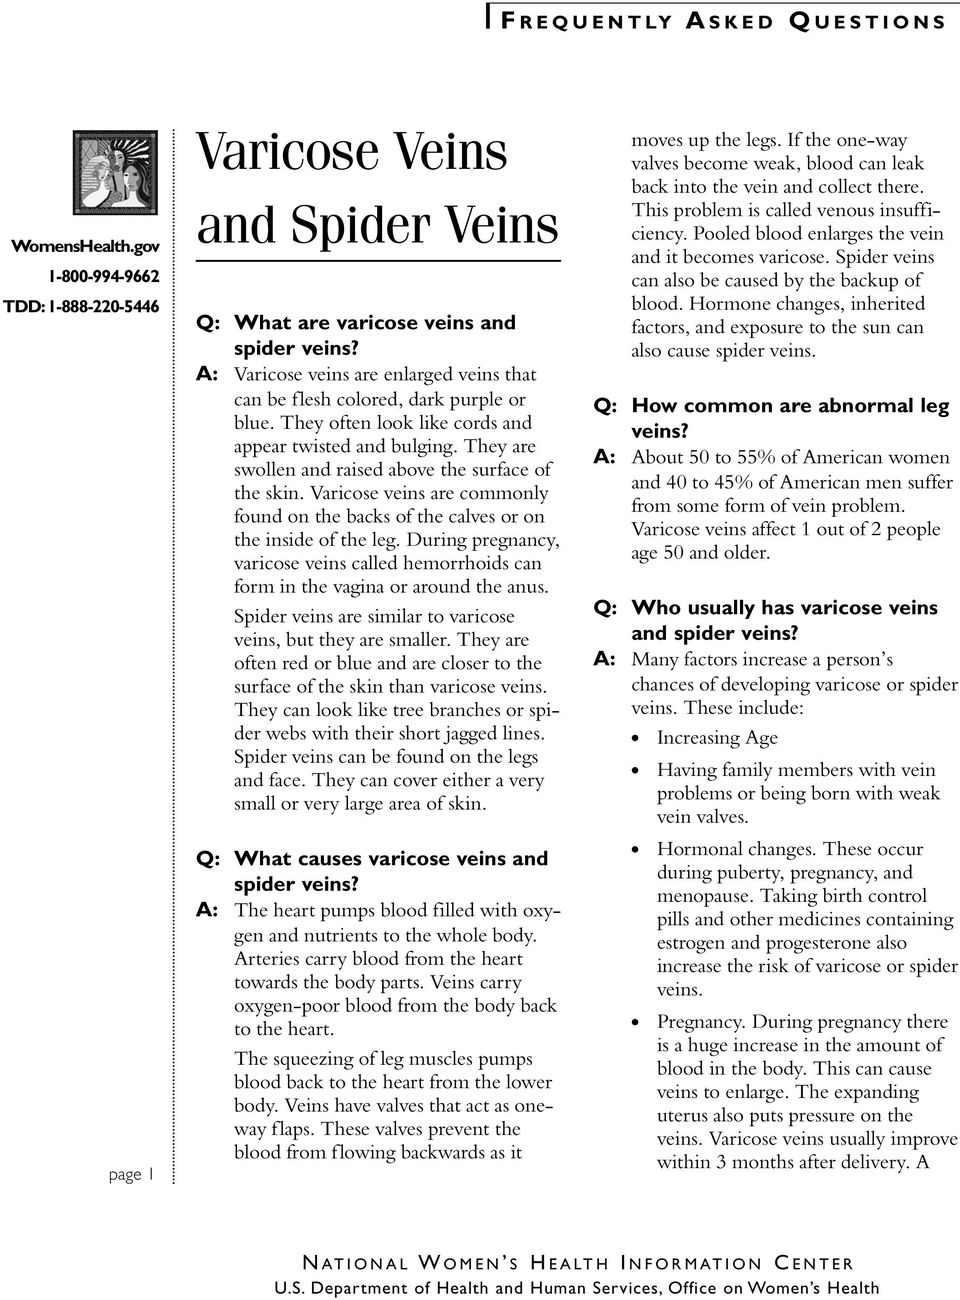 Hormone changes, inherited Q: What are varicose veins and factors, and exposure to the sun can spider veins? also cause spider veins.